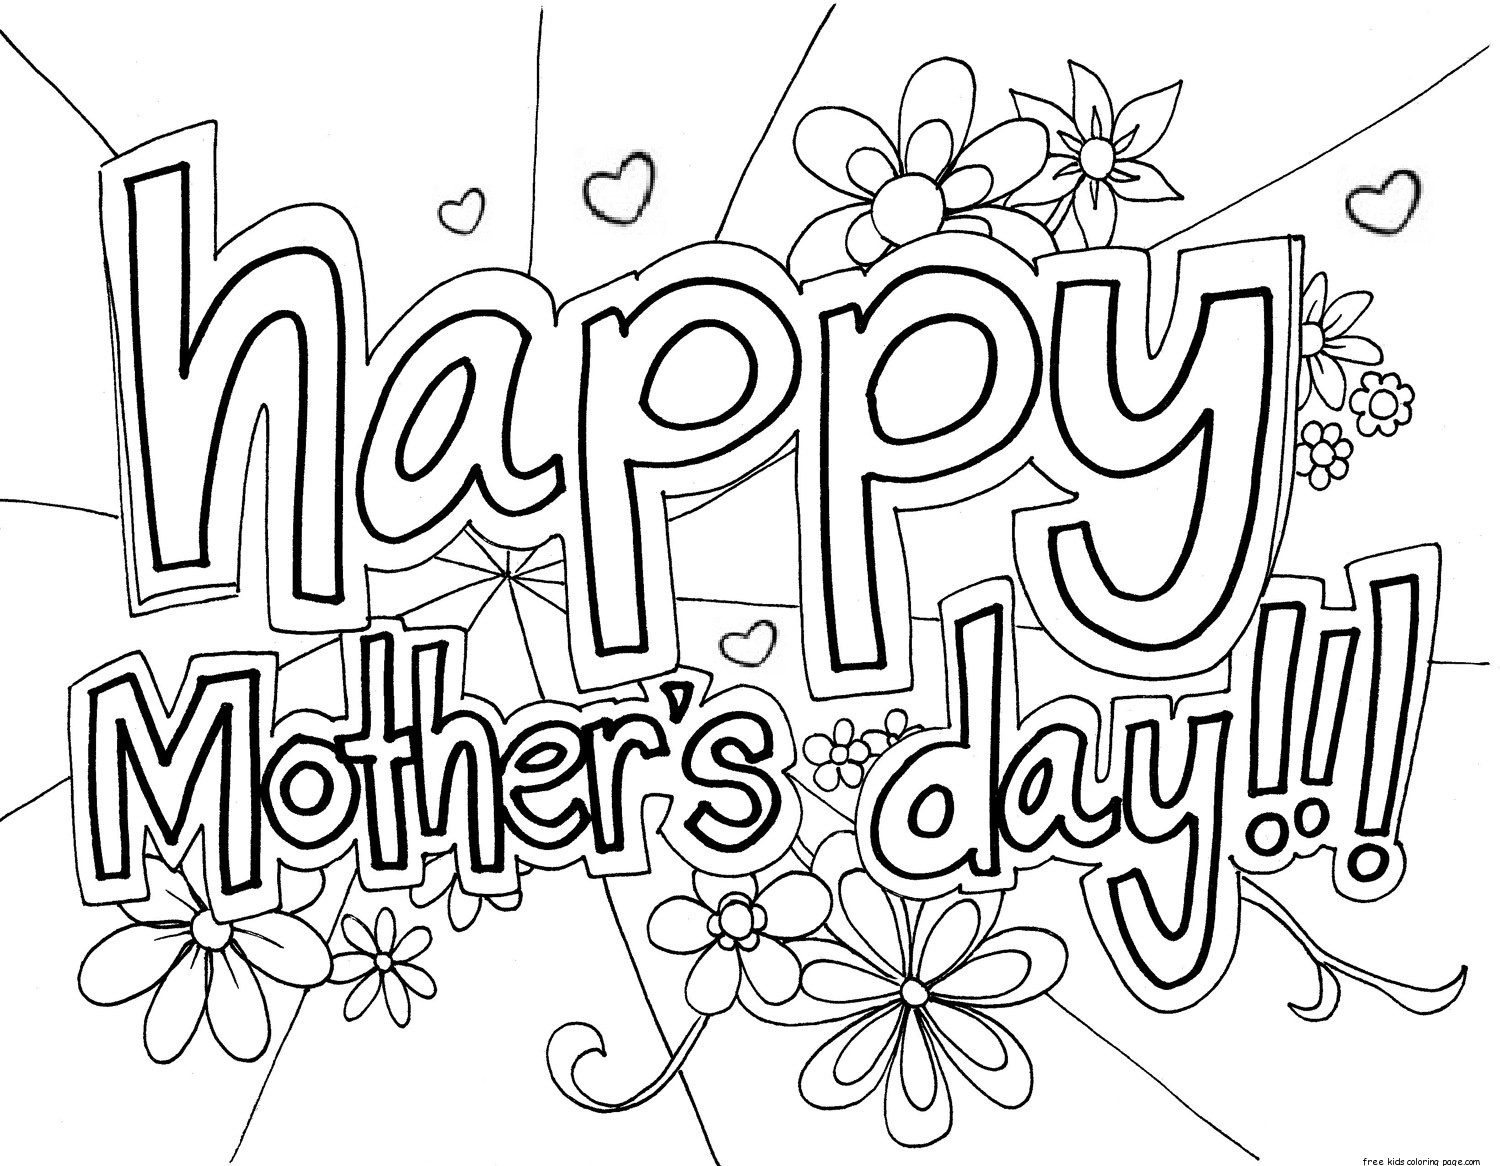 photo about Free Printable Coloring Mothers Day Cards referred to as Pleased Moms Working day Drawing at  Totally free for